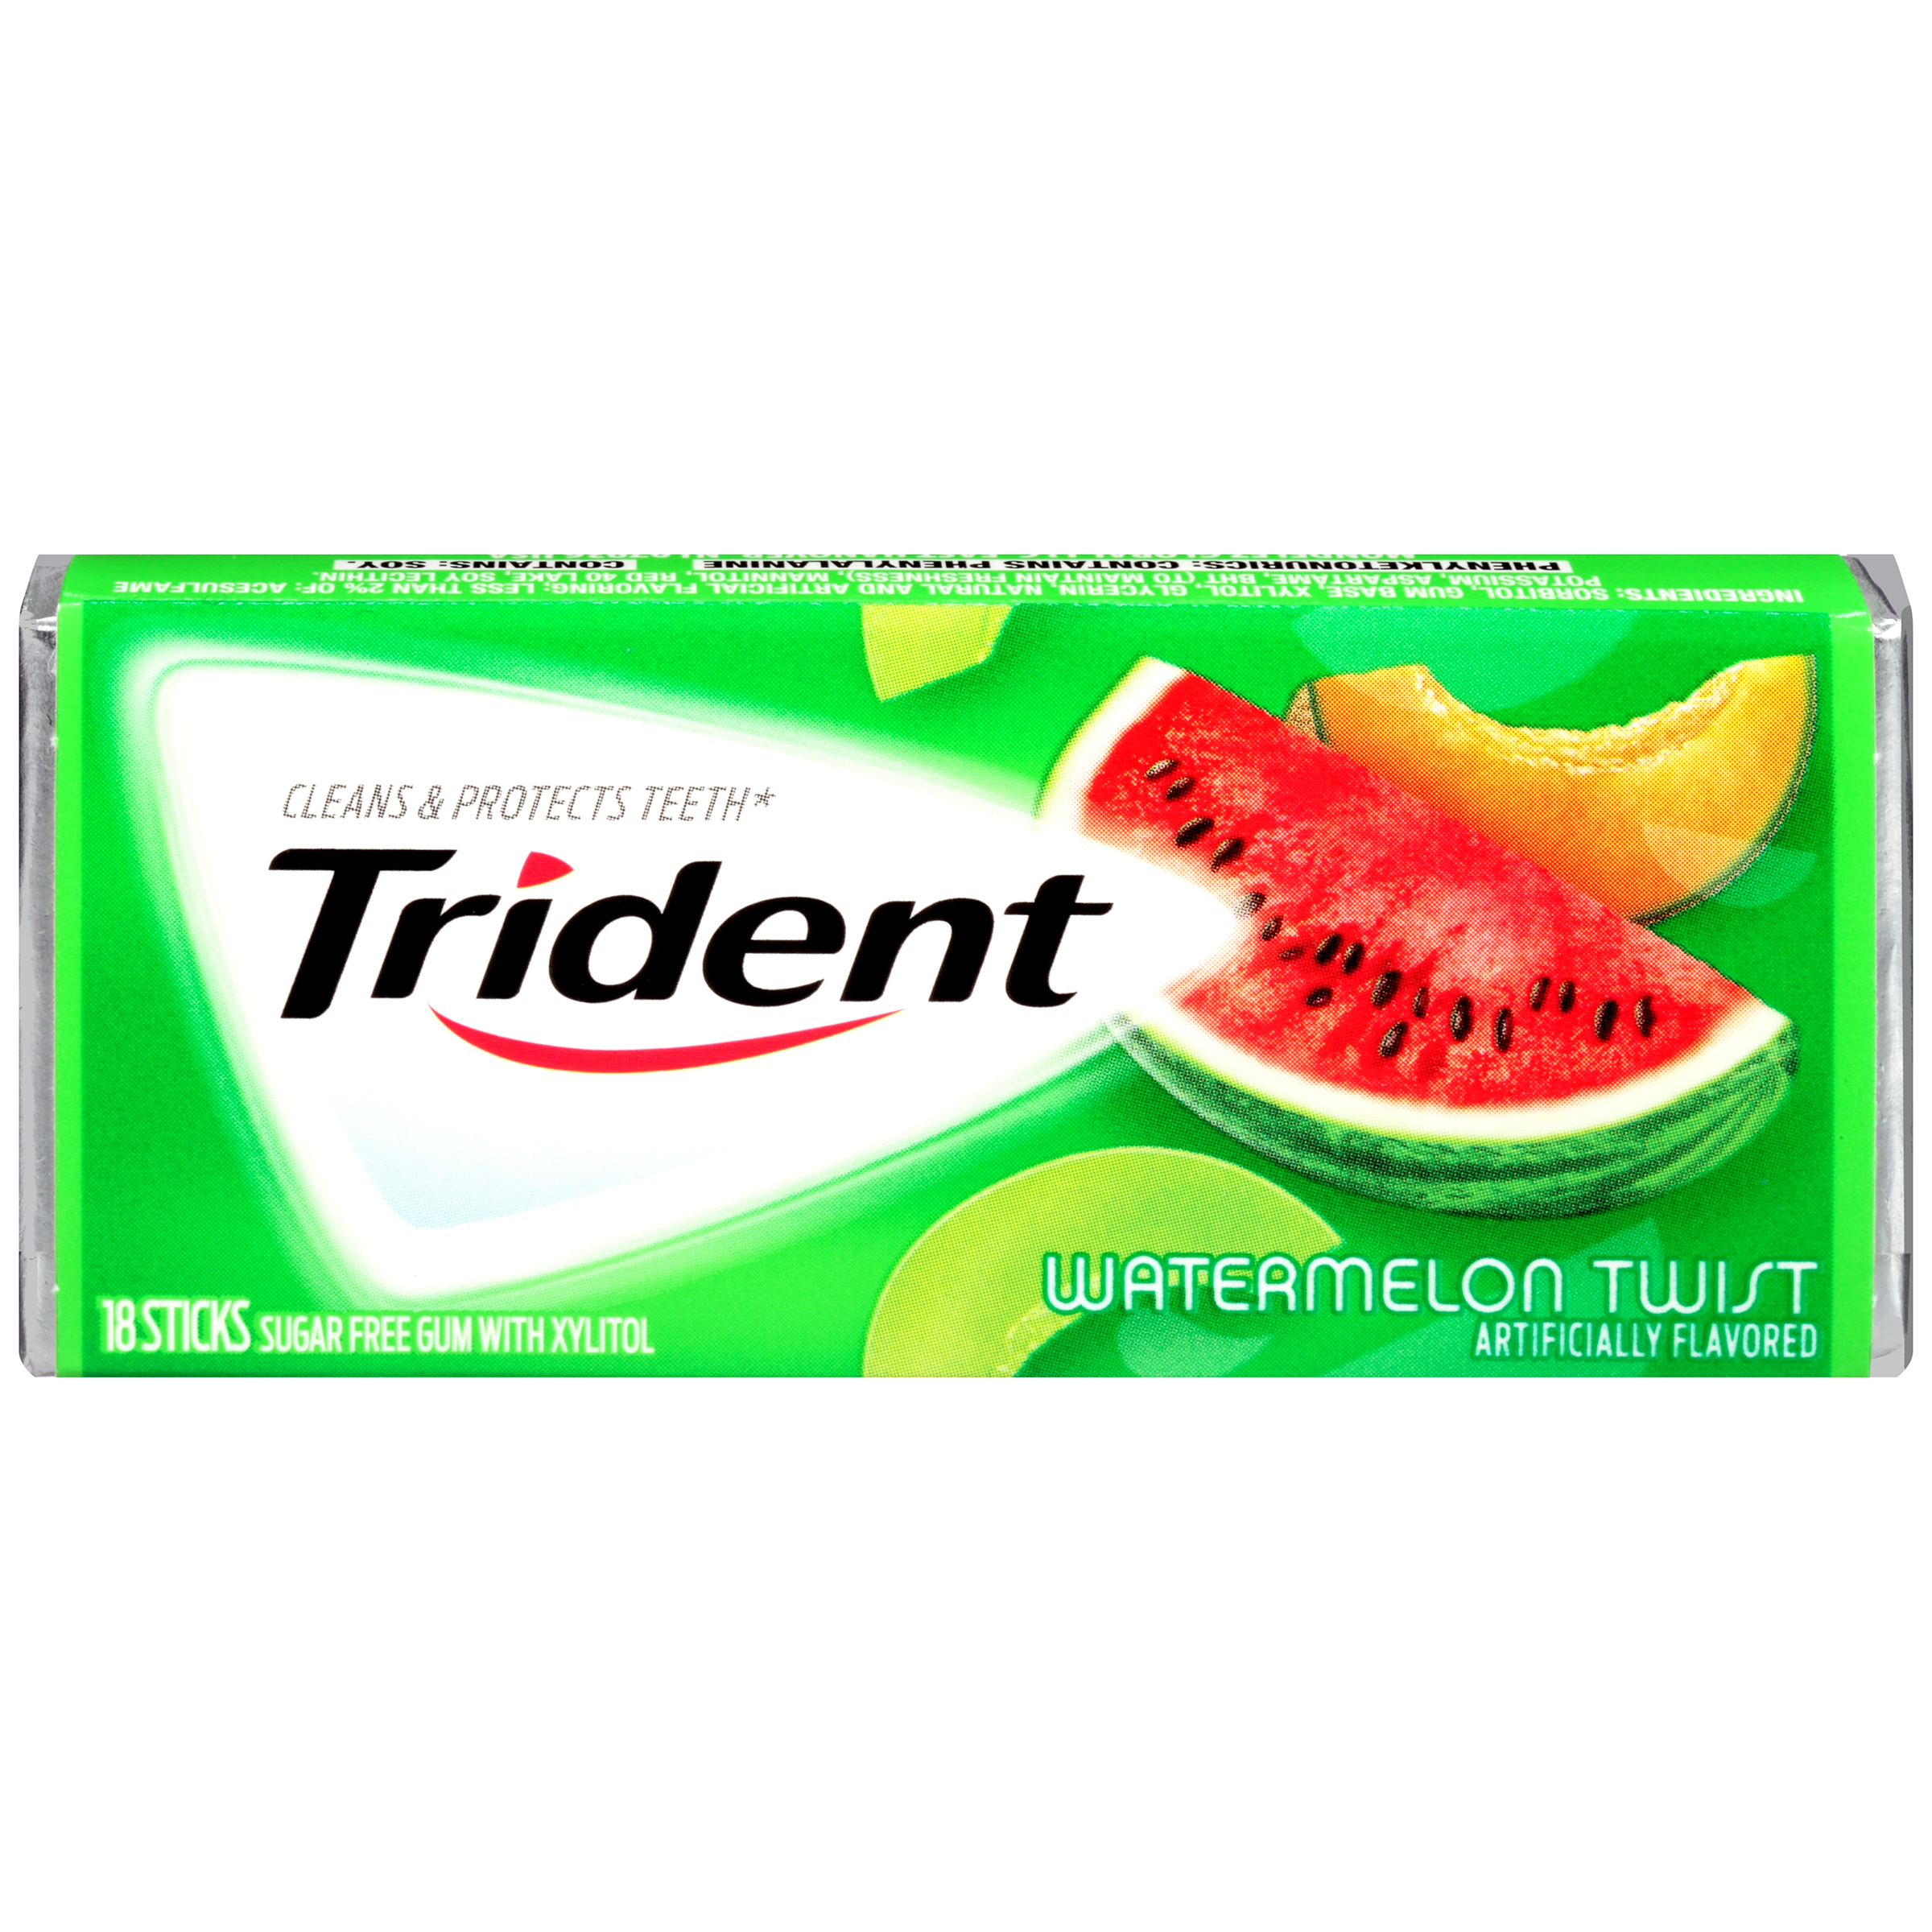 Trident Gum Sugar Free Twist Watermelon - 18 Sticks/Pack, 12 Pack